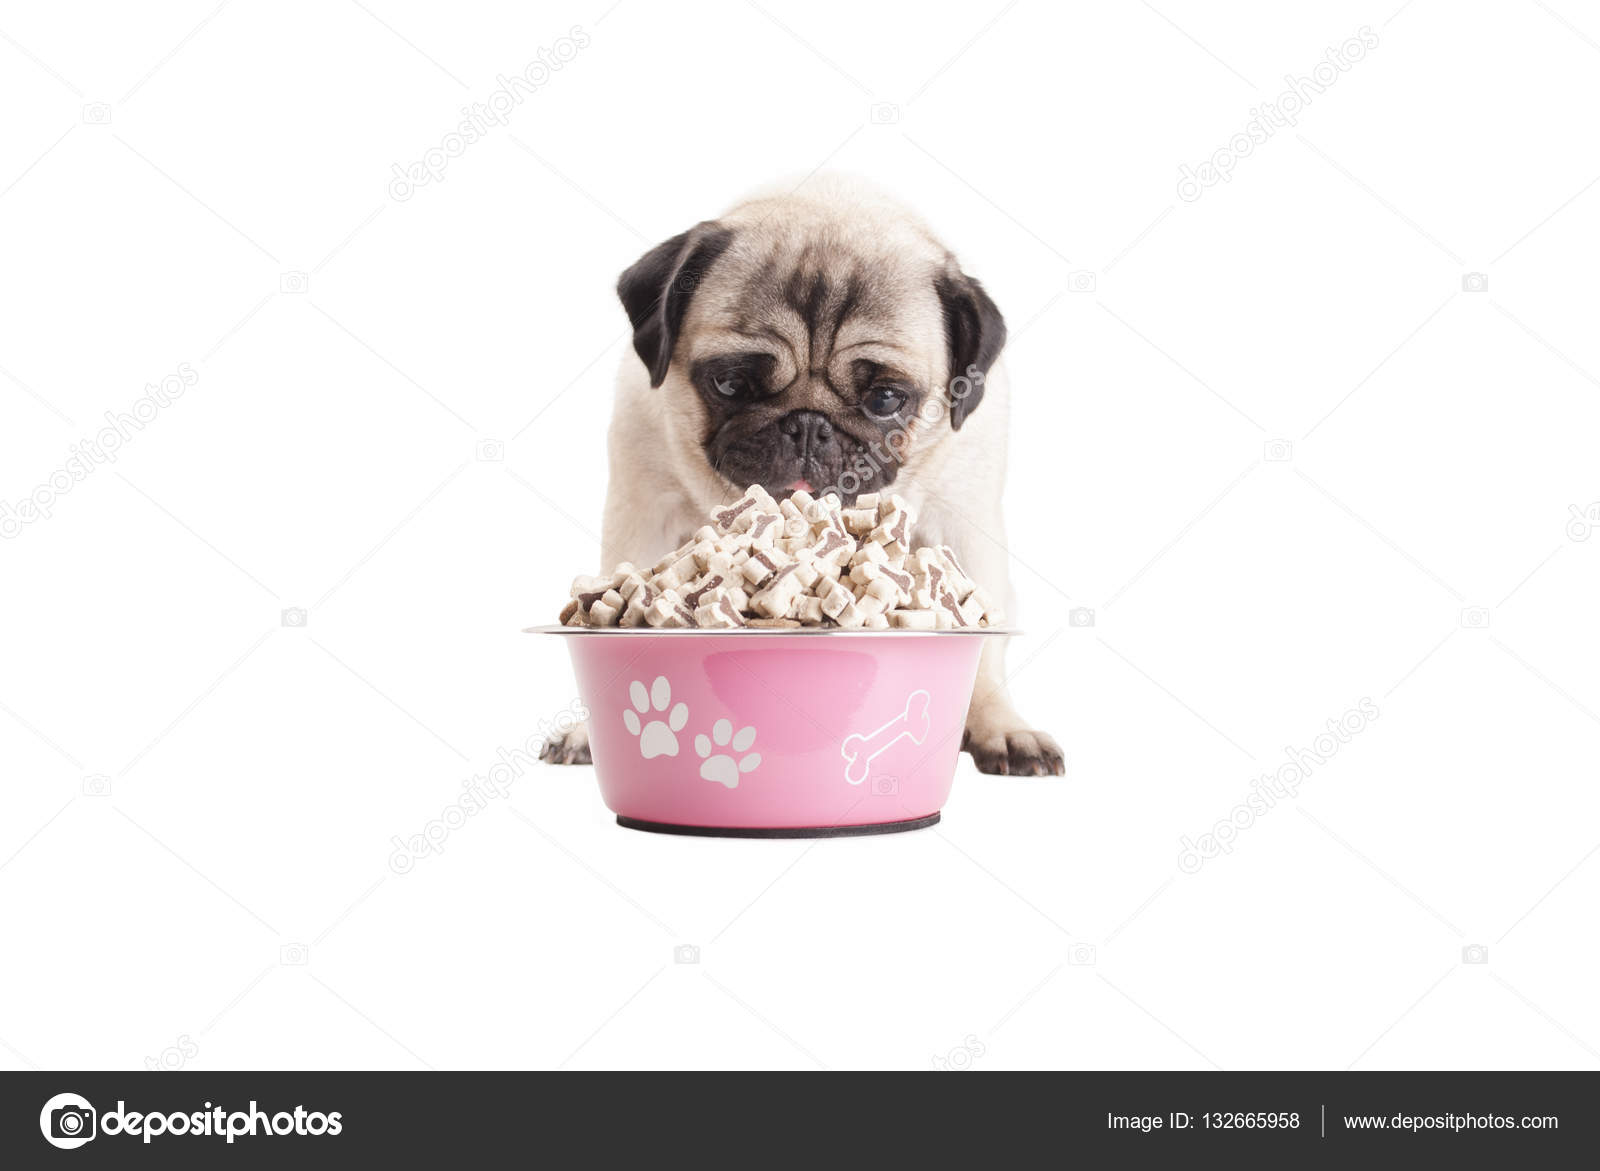 Best Dry Food For Pugs